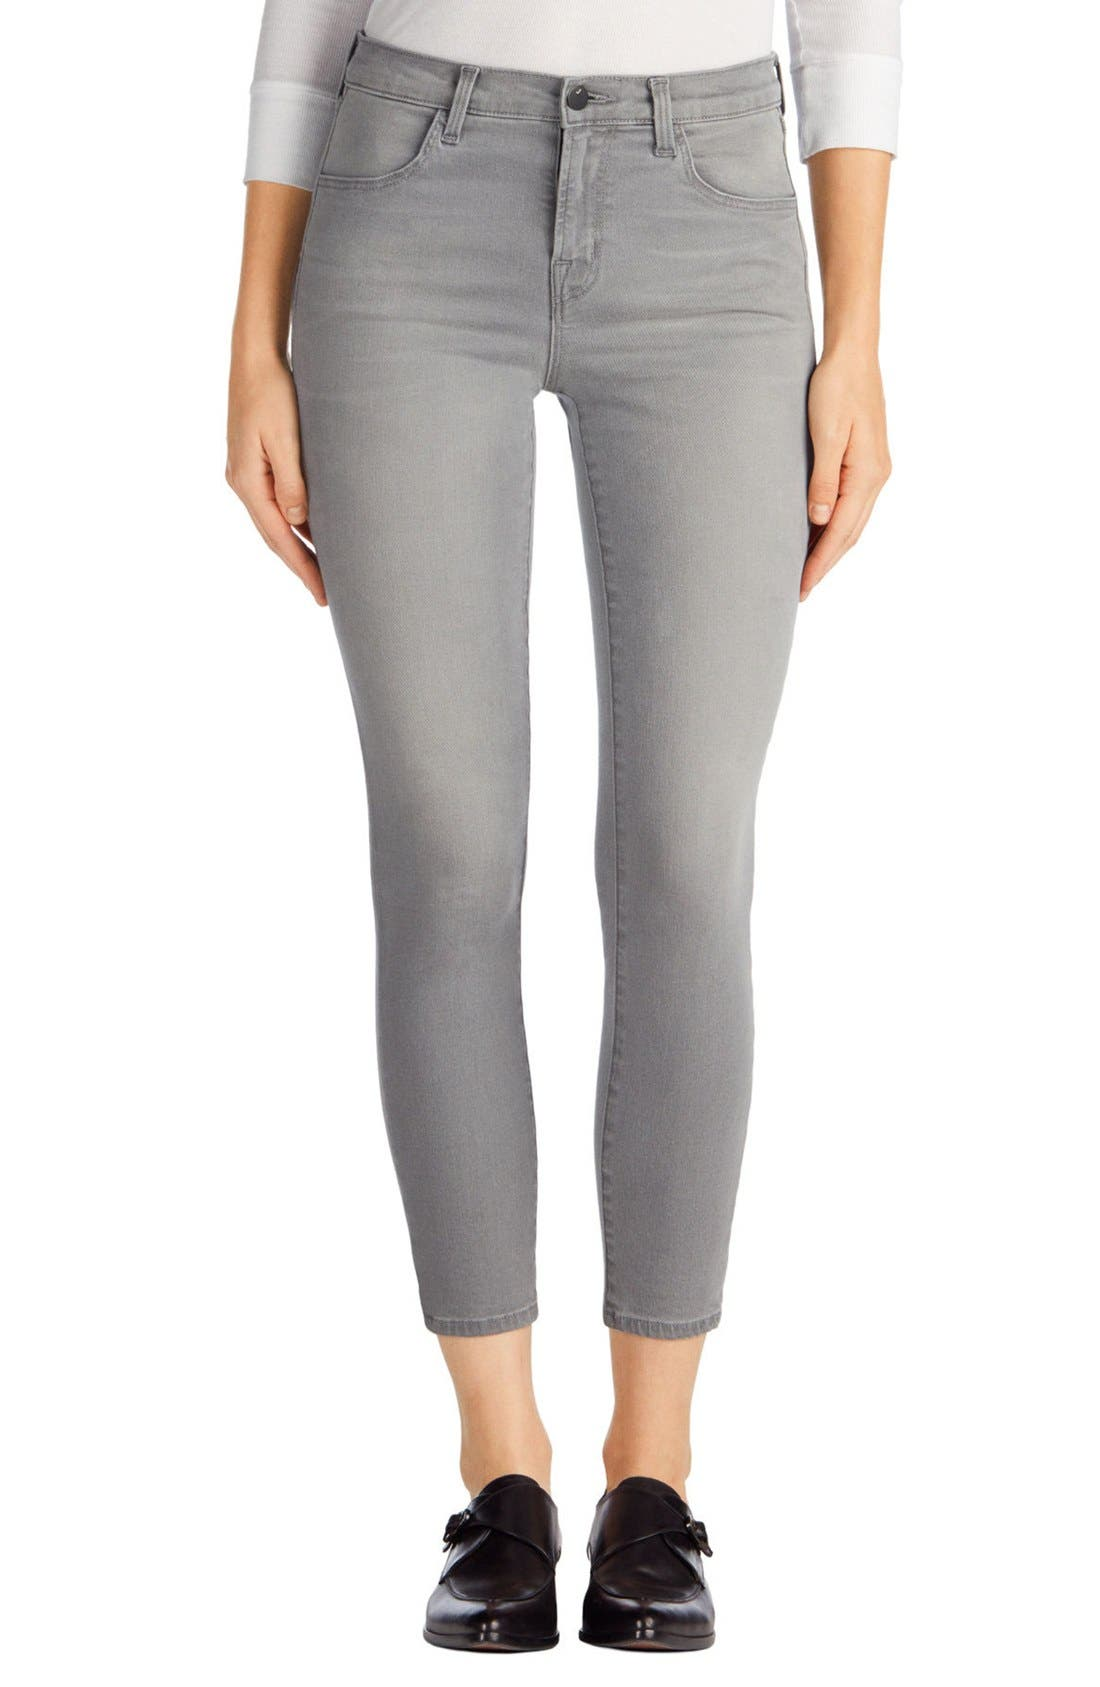 Alternate Image 1 Selected - J Brand Capri Skinny Jeans